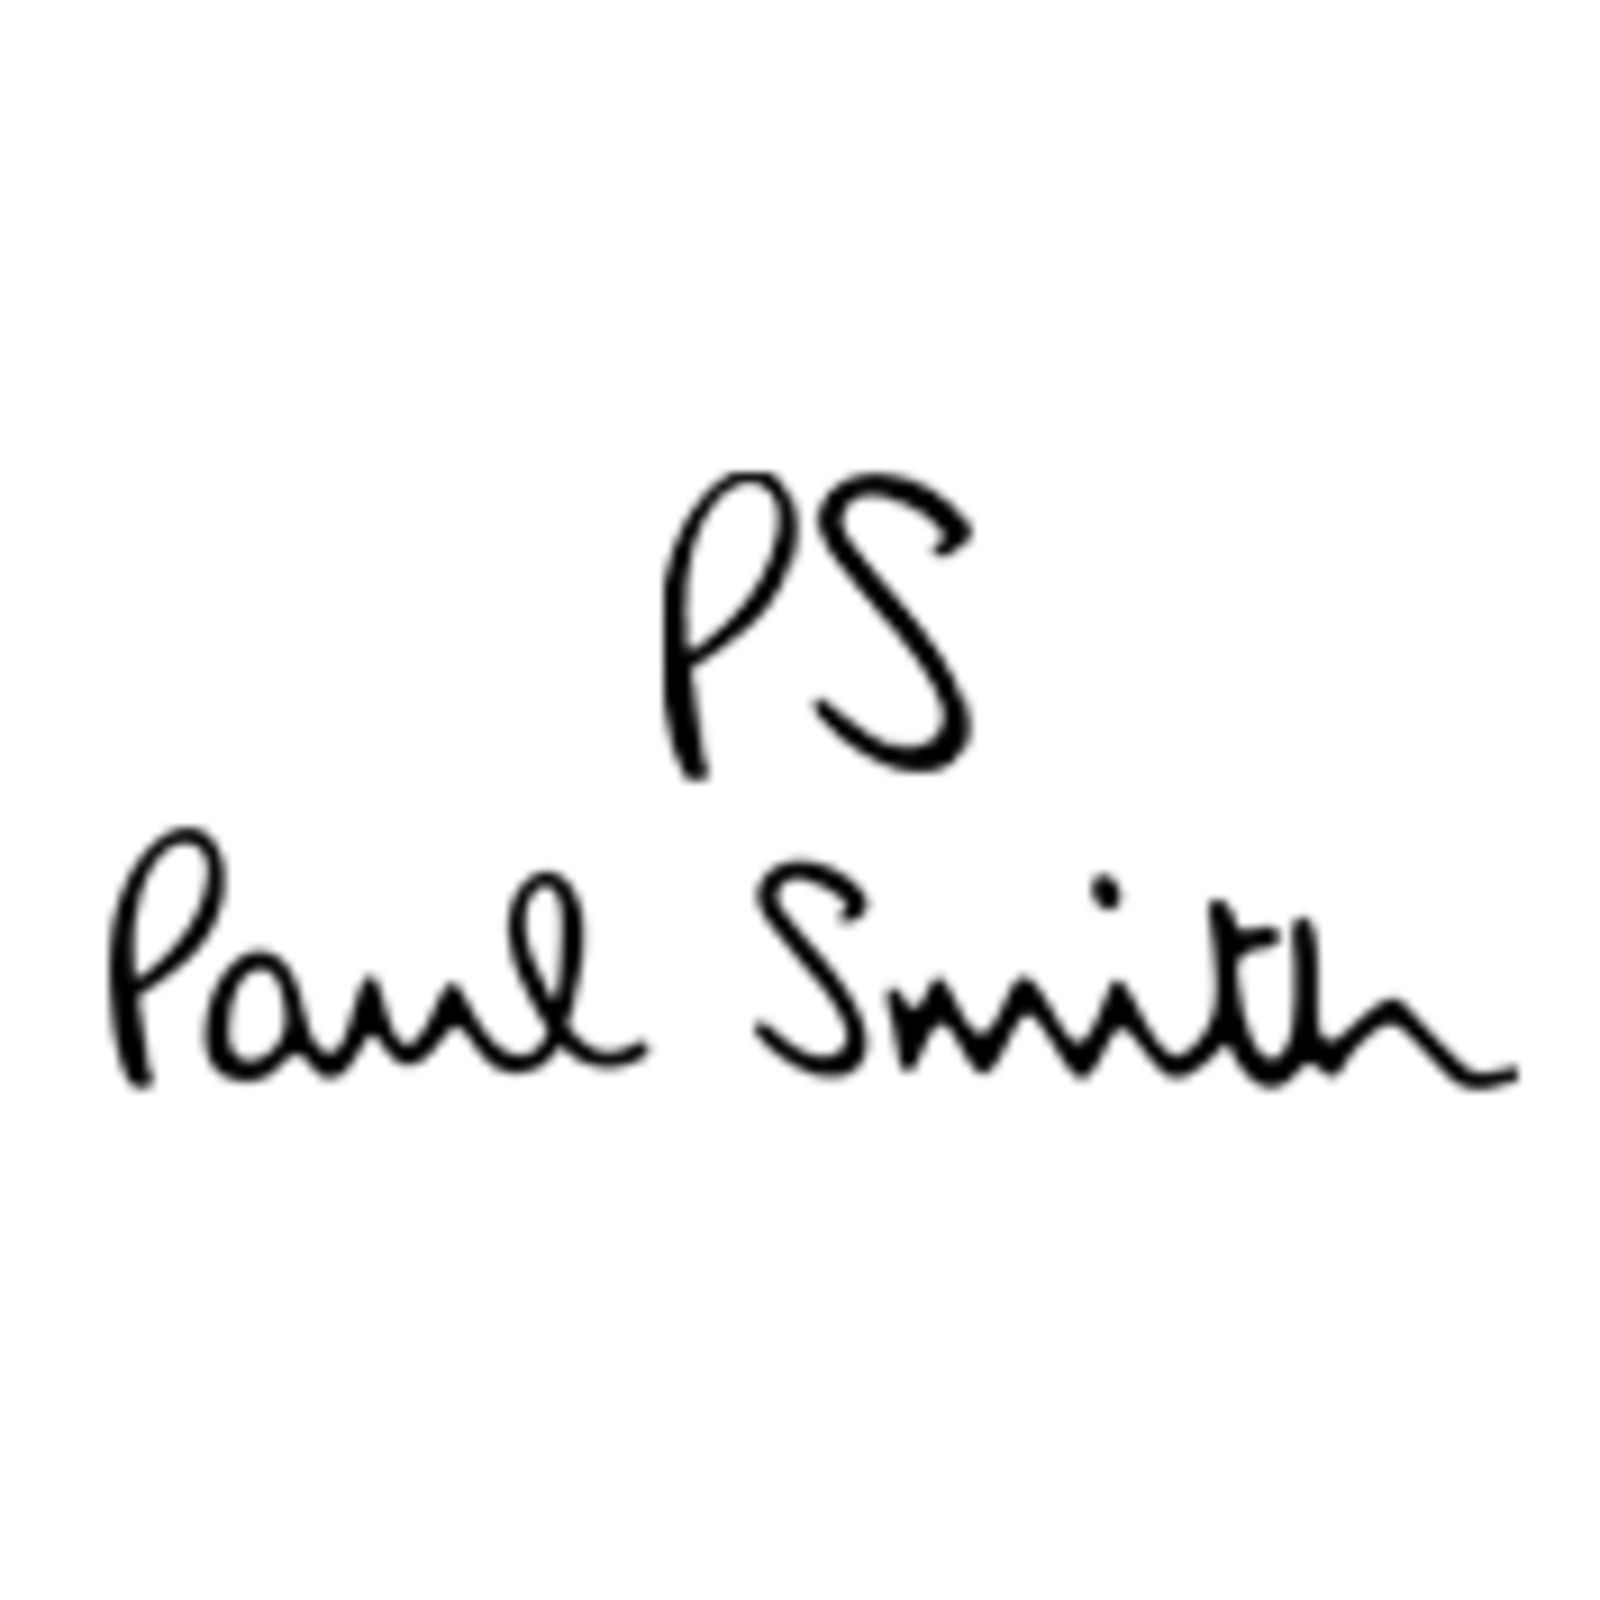 PS Paul Smith (Image 1)